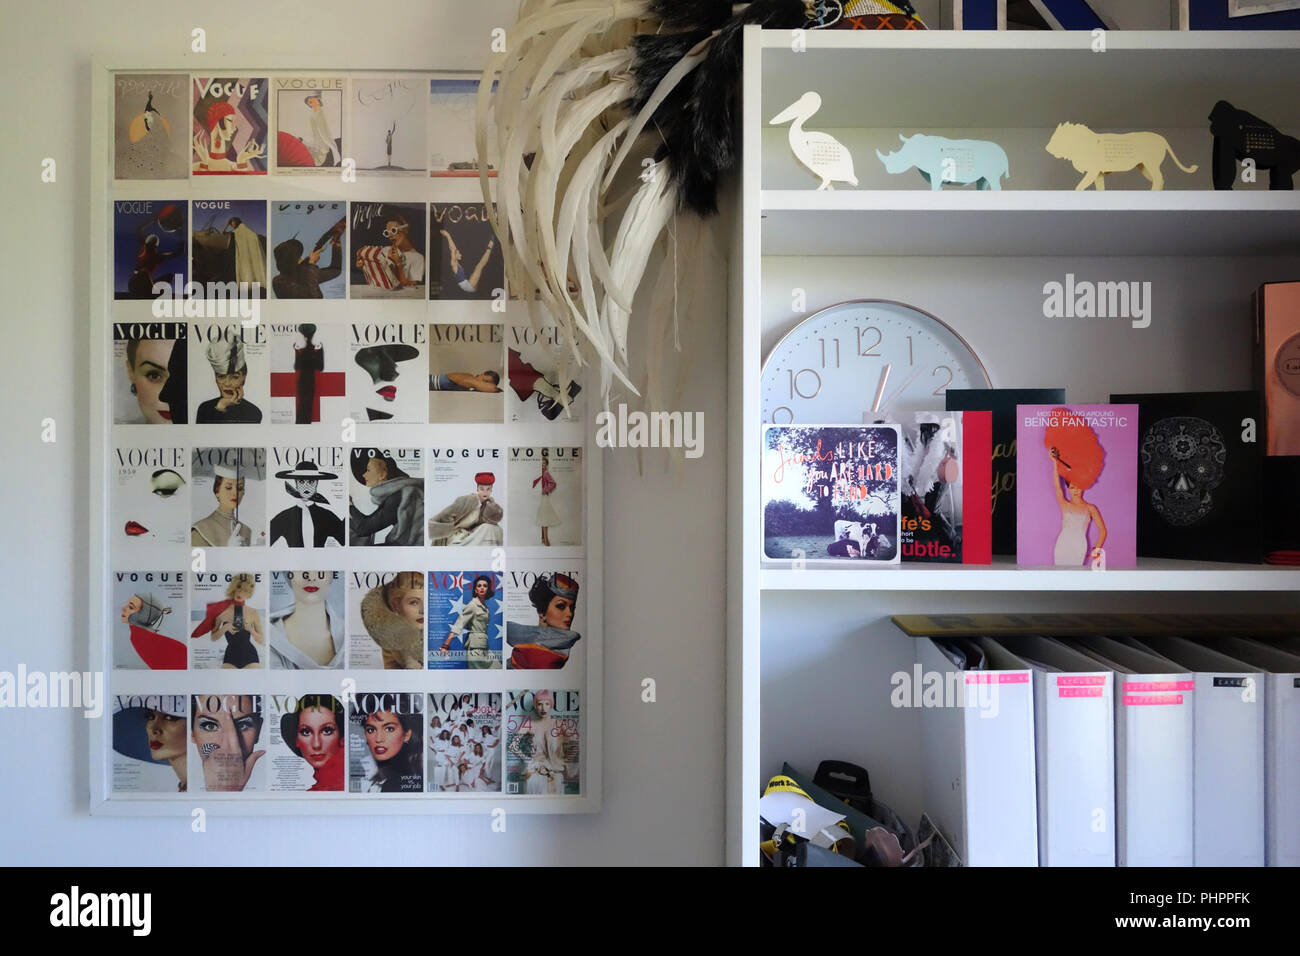 White Contemporary Bookshelf Next To Poster With All The Great Vogue Covers